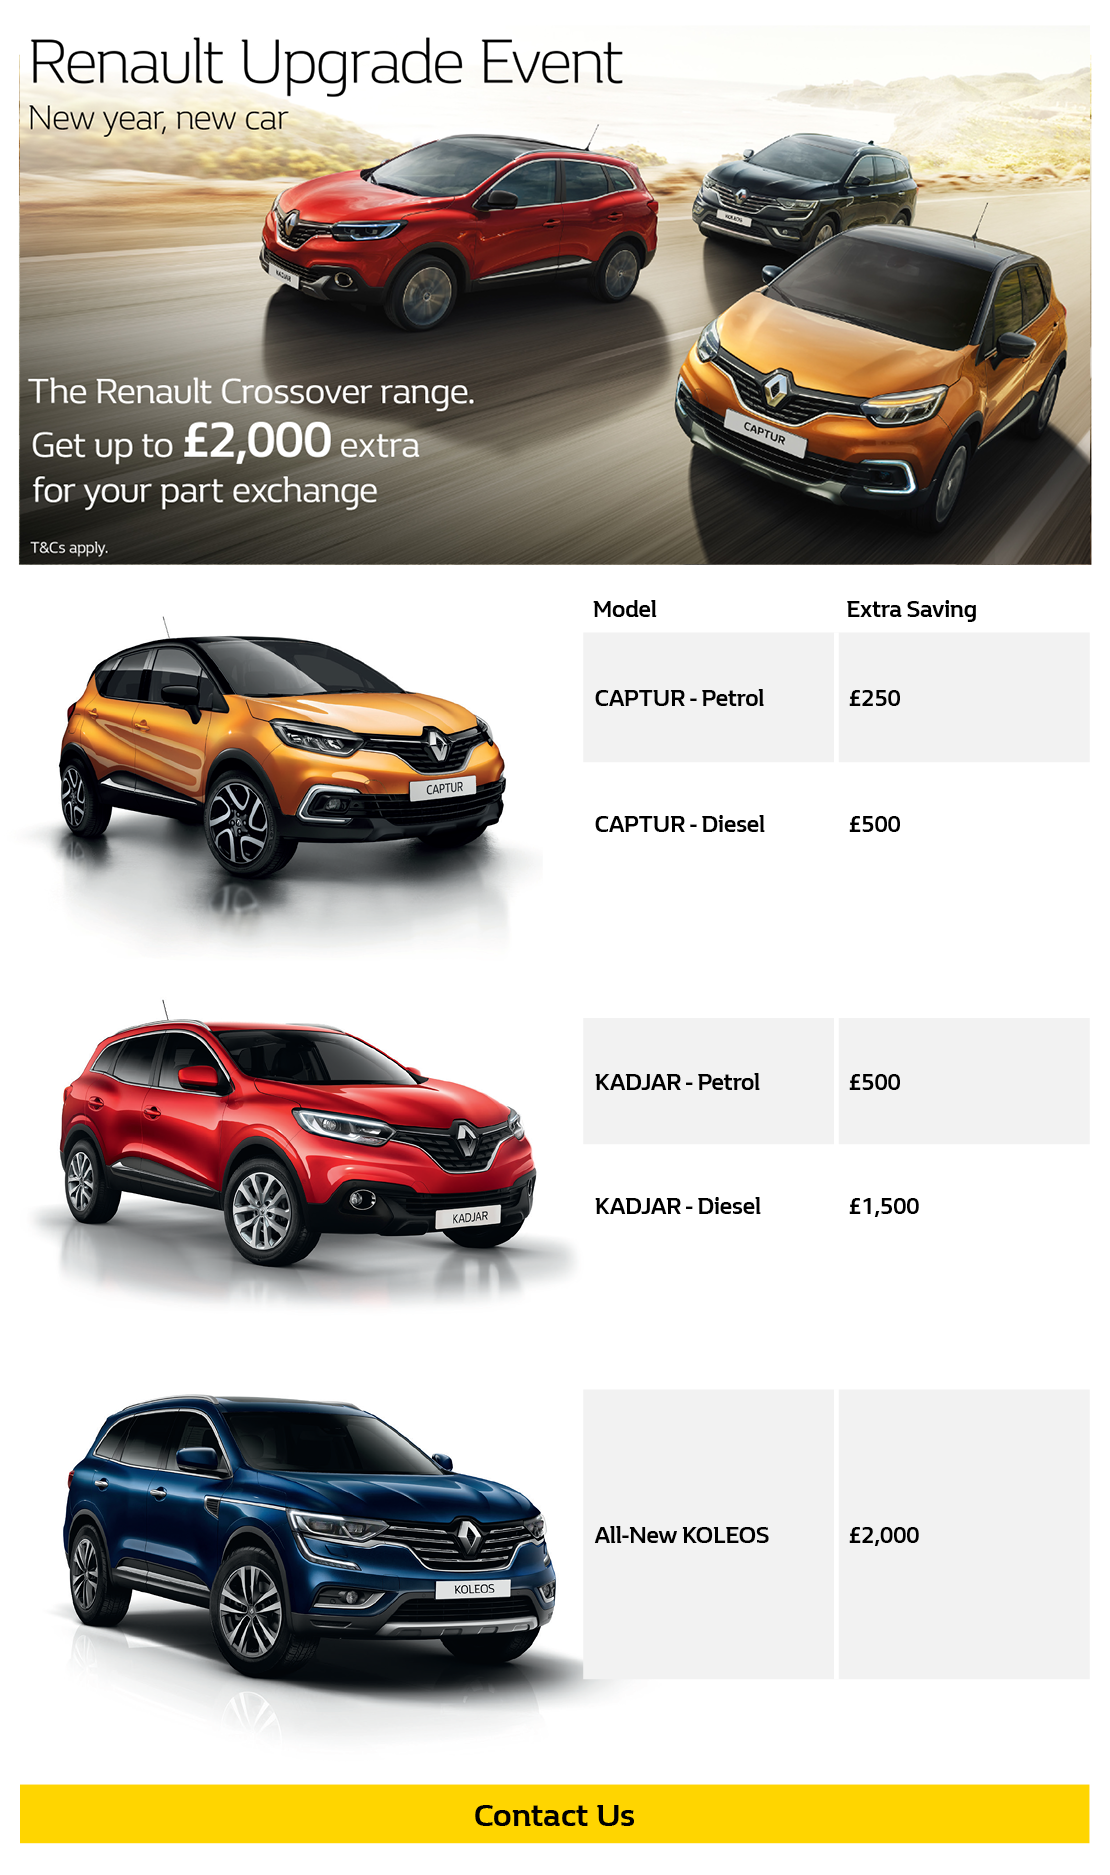 Renault Upgrade Event - Get up to £2,000 for your part exchange*